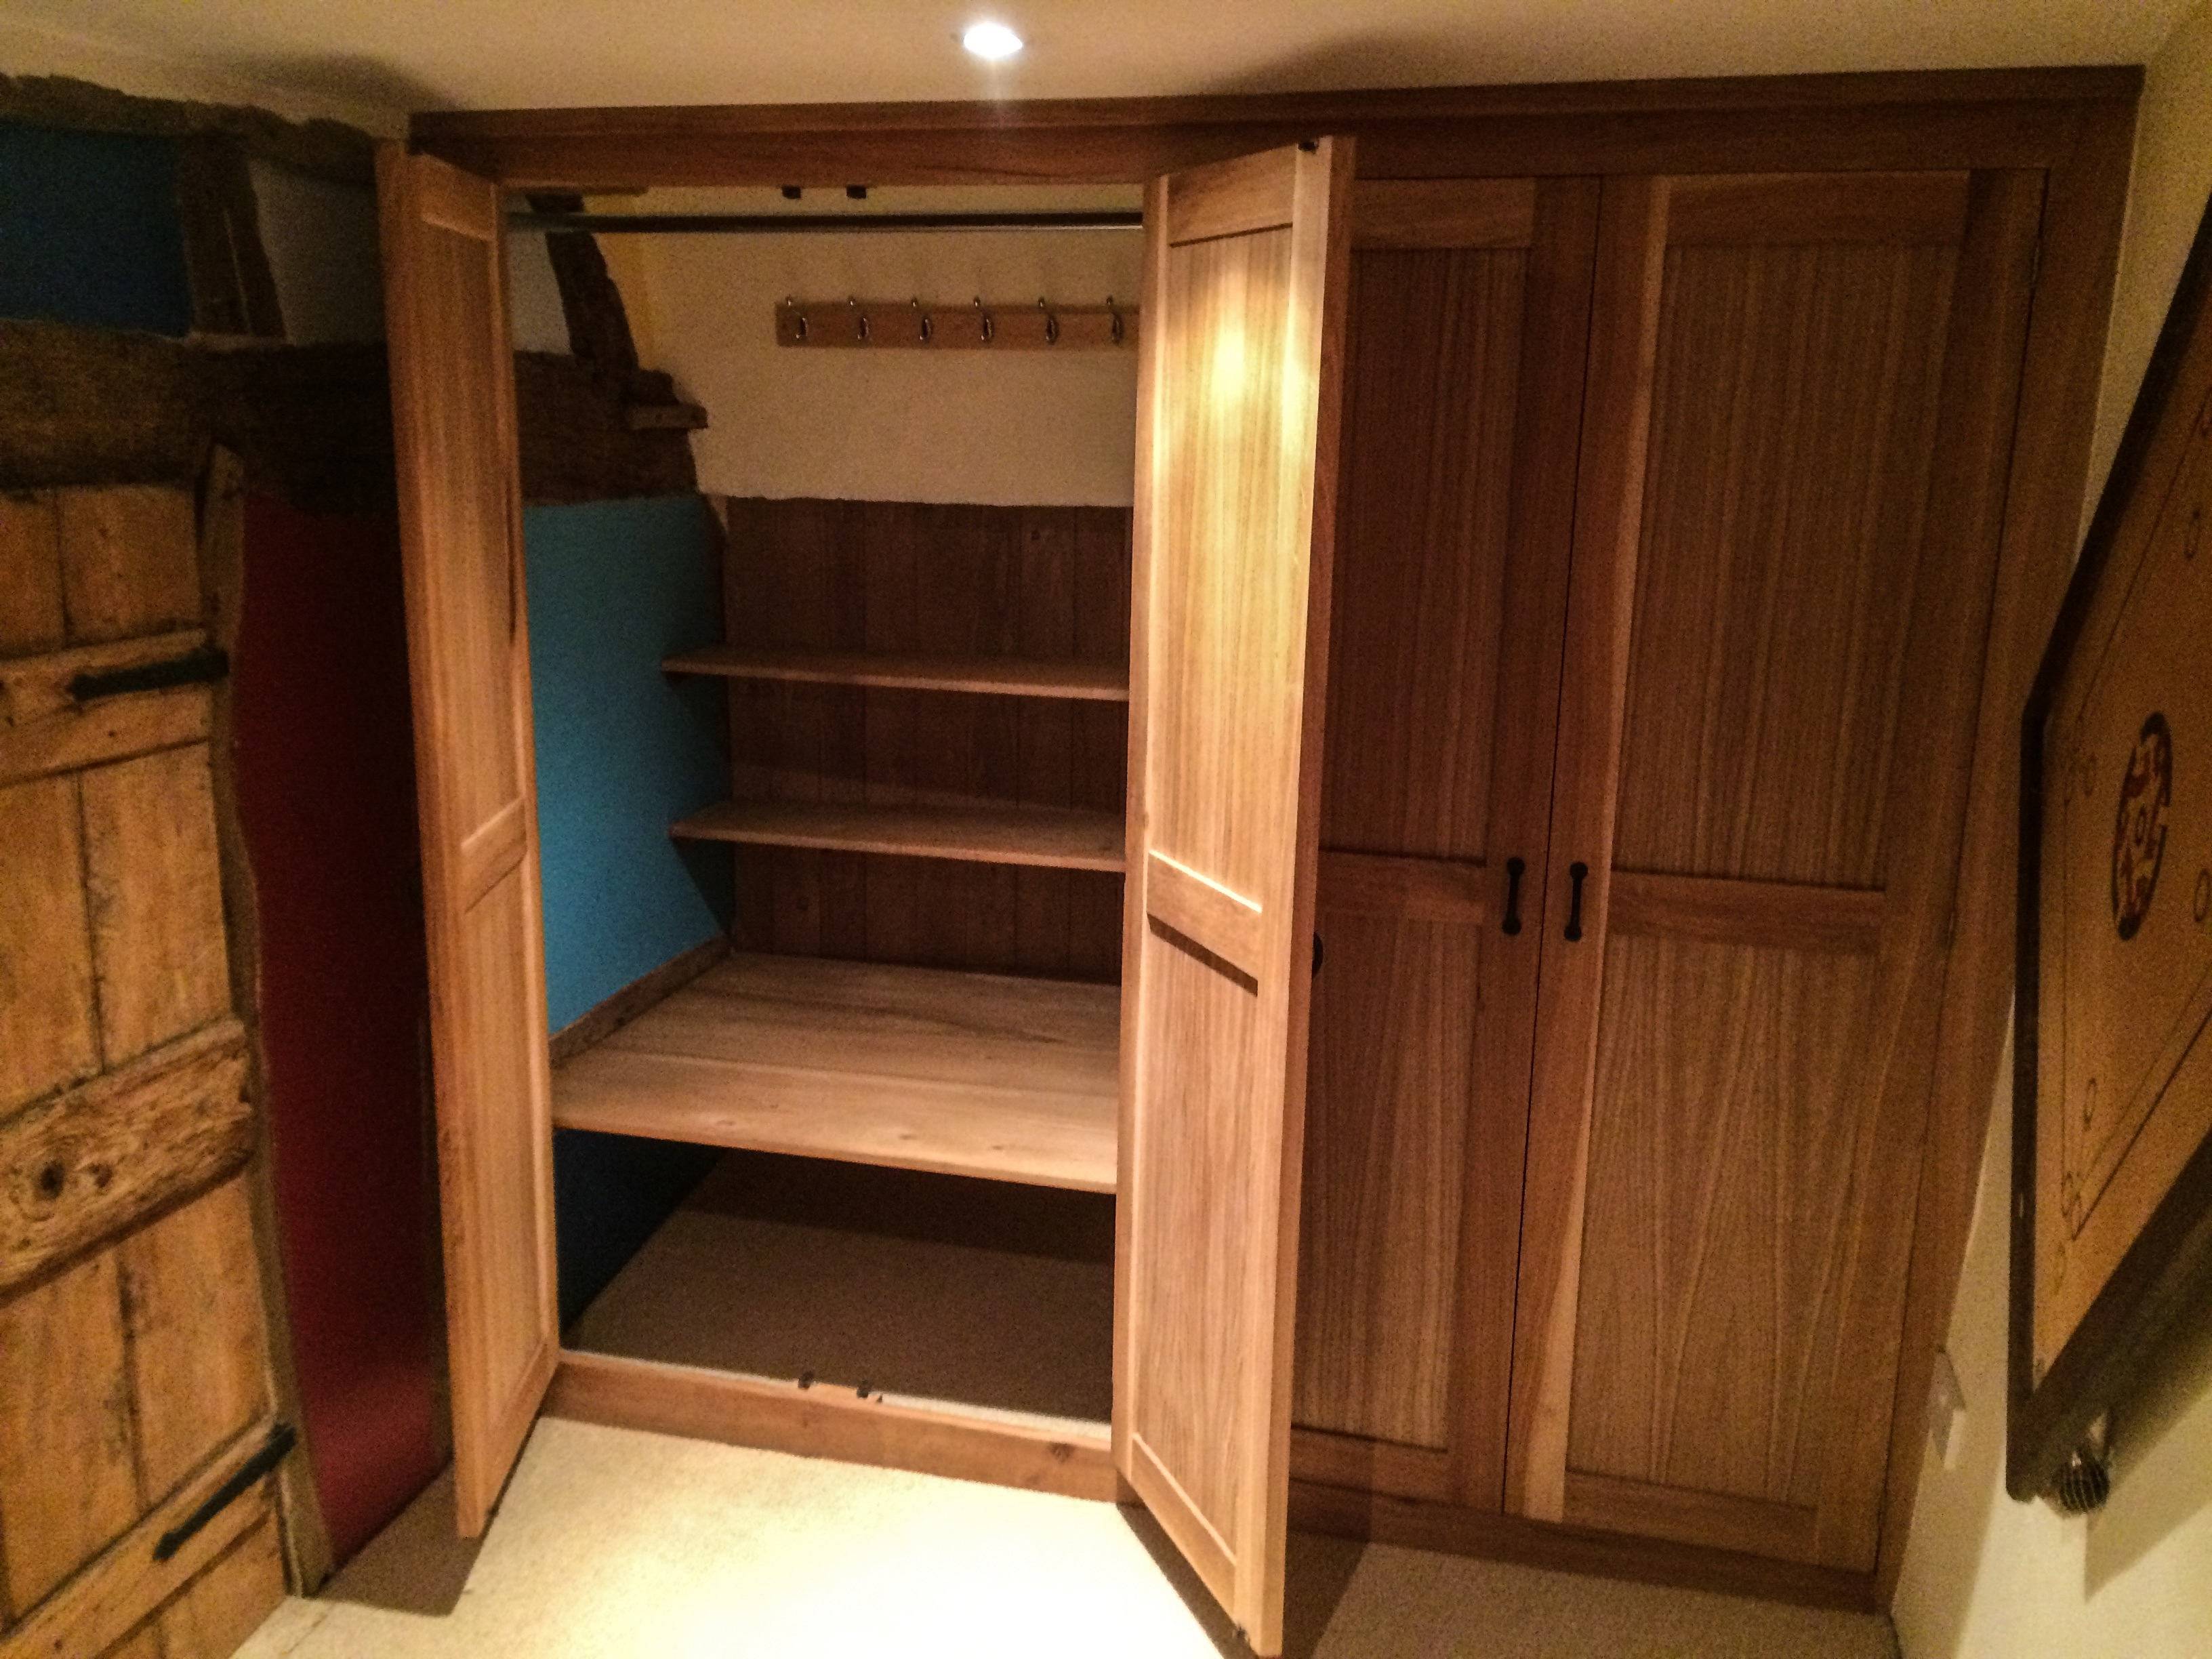 16 Best Fitted Bedroom Furniture Images On Pinterest Regarding Solid Wood Fitted Wardrobes (Photo 1 of 15)